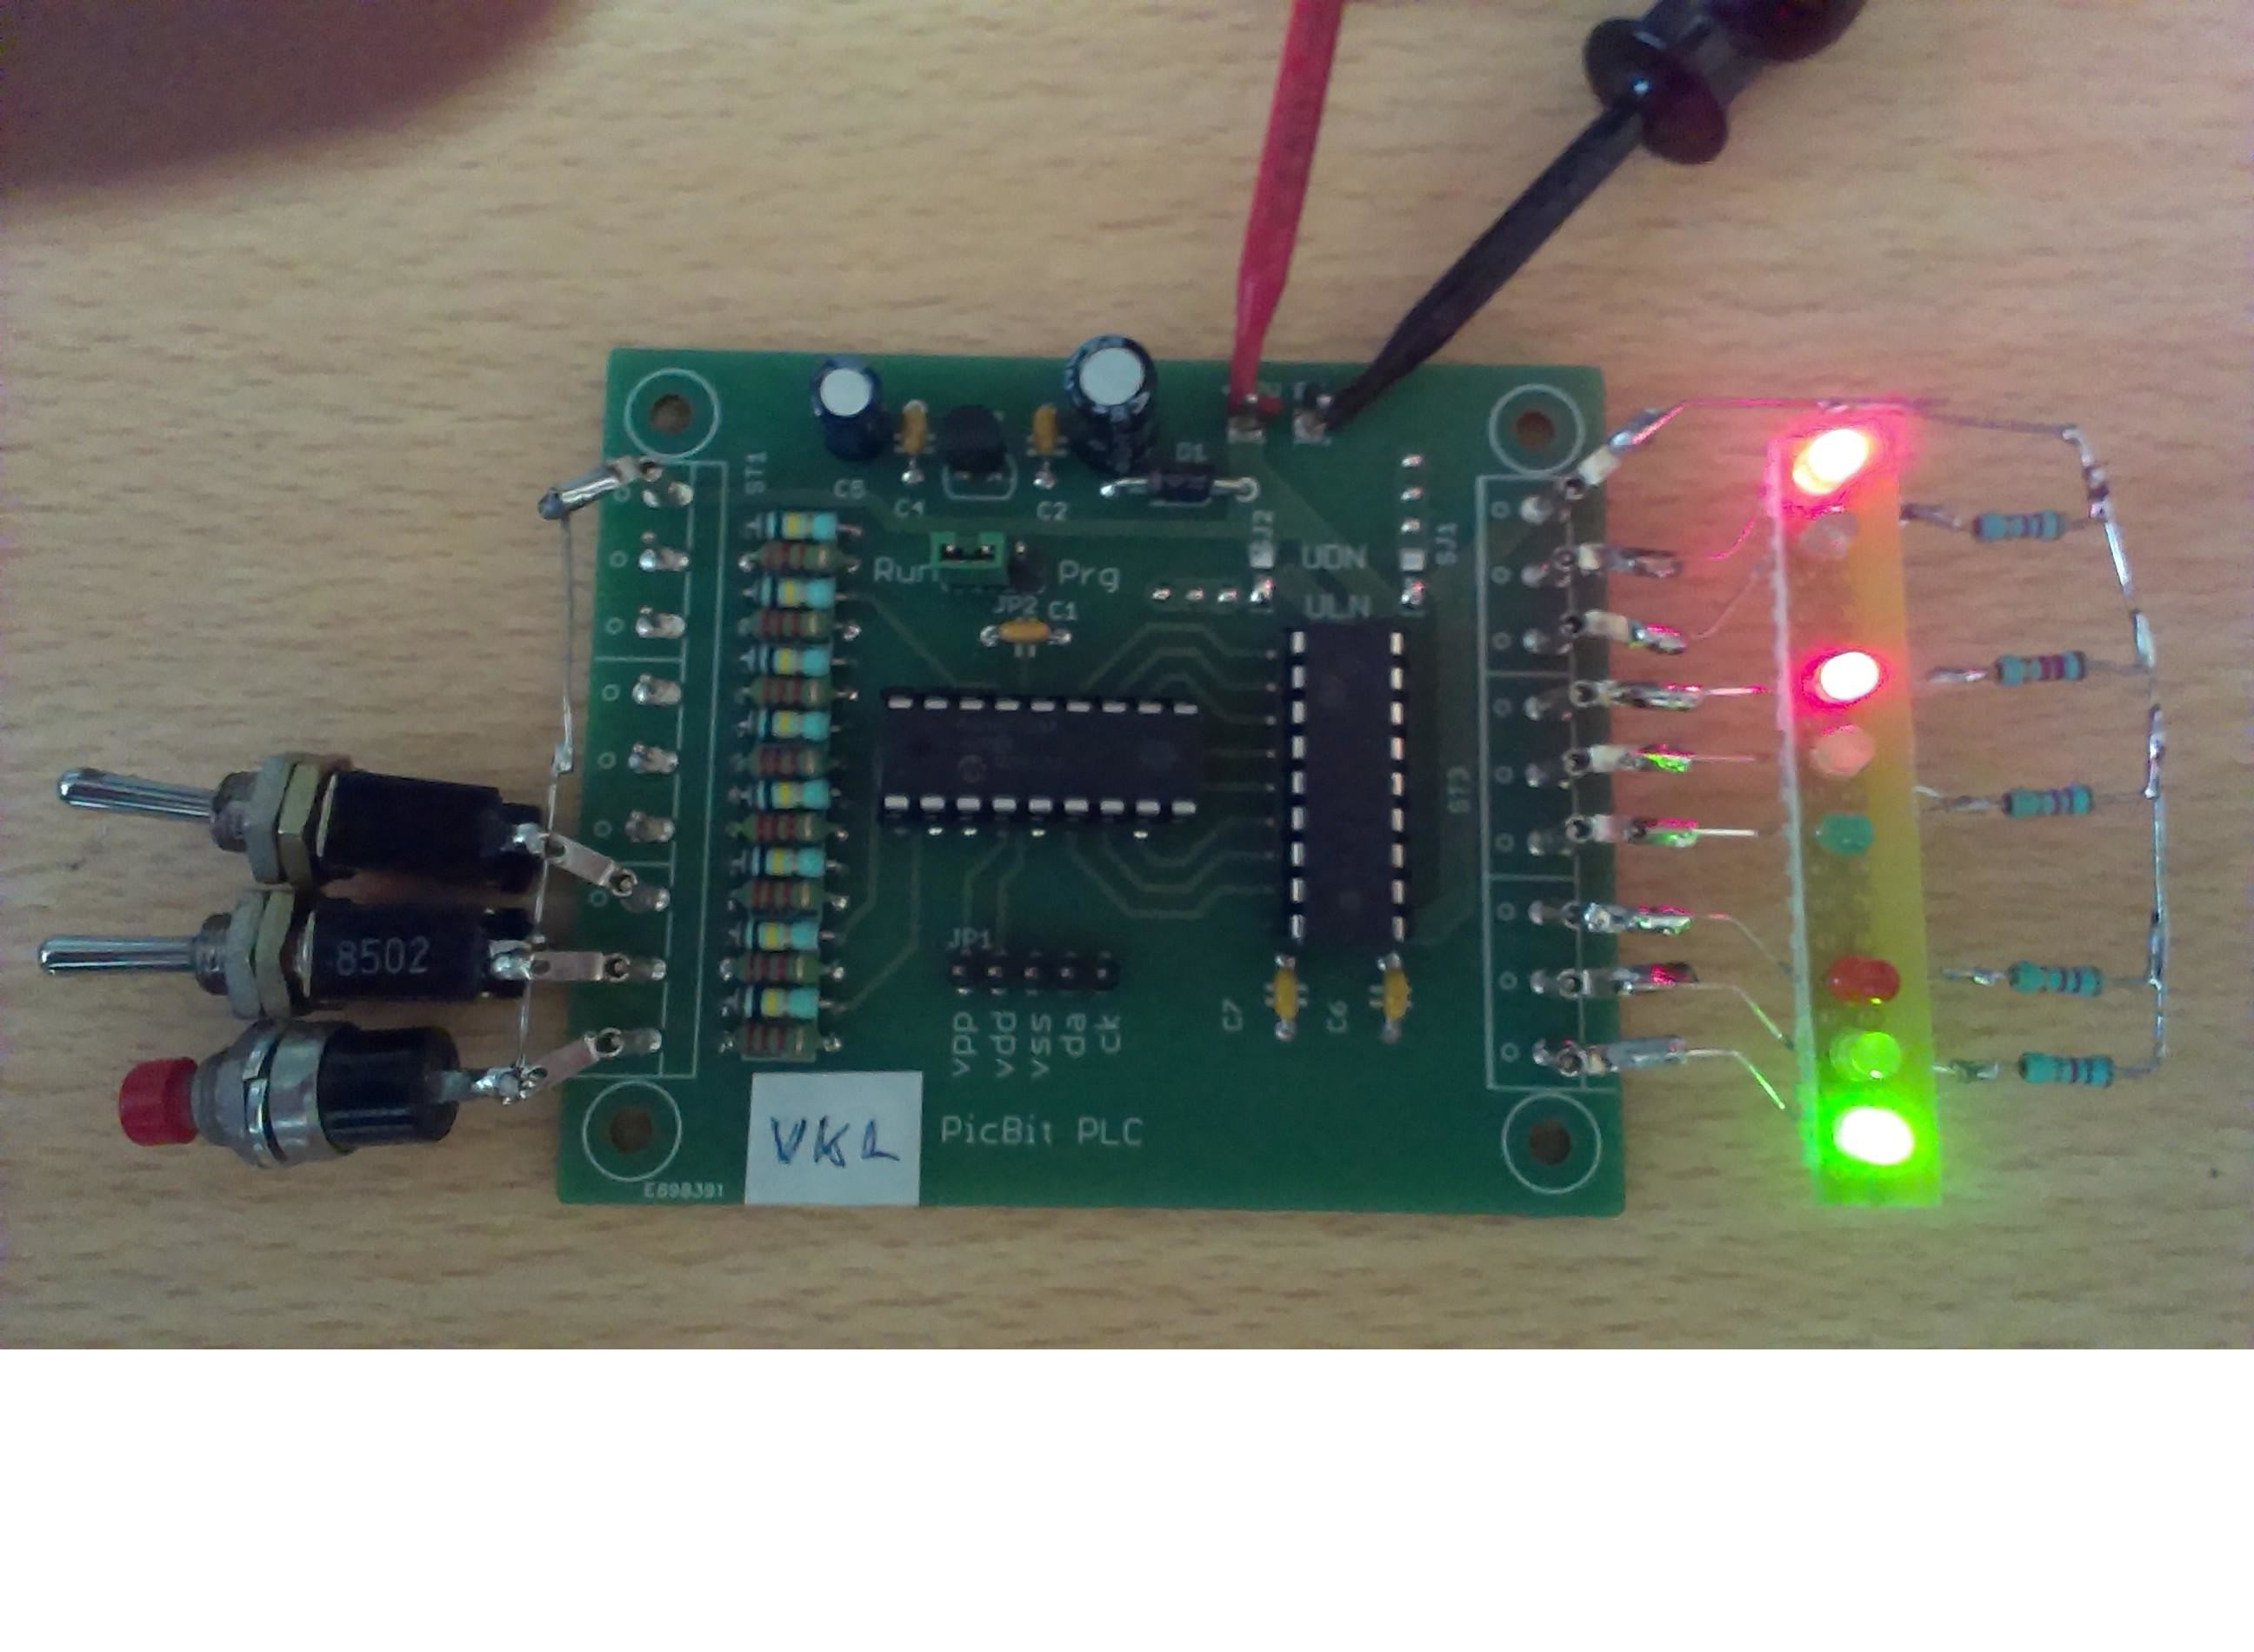 A Traffic Light System For The Modell Railroad Elektor Labs Question Electronics Forum Circuits Projects And Microcontrollers Magazine